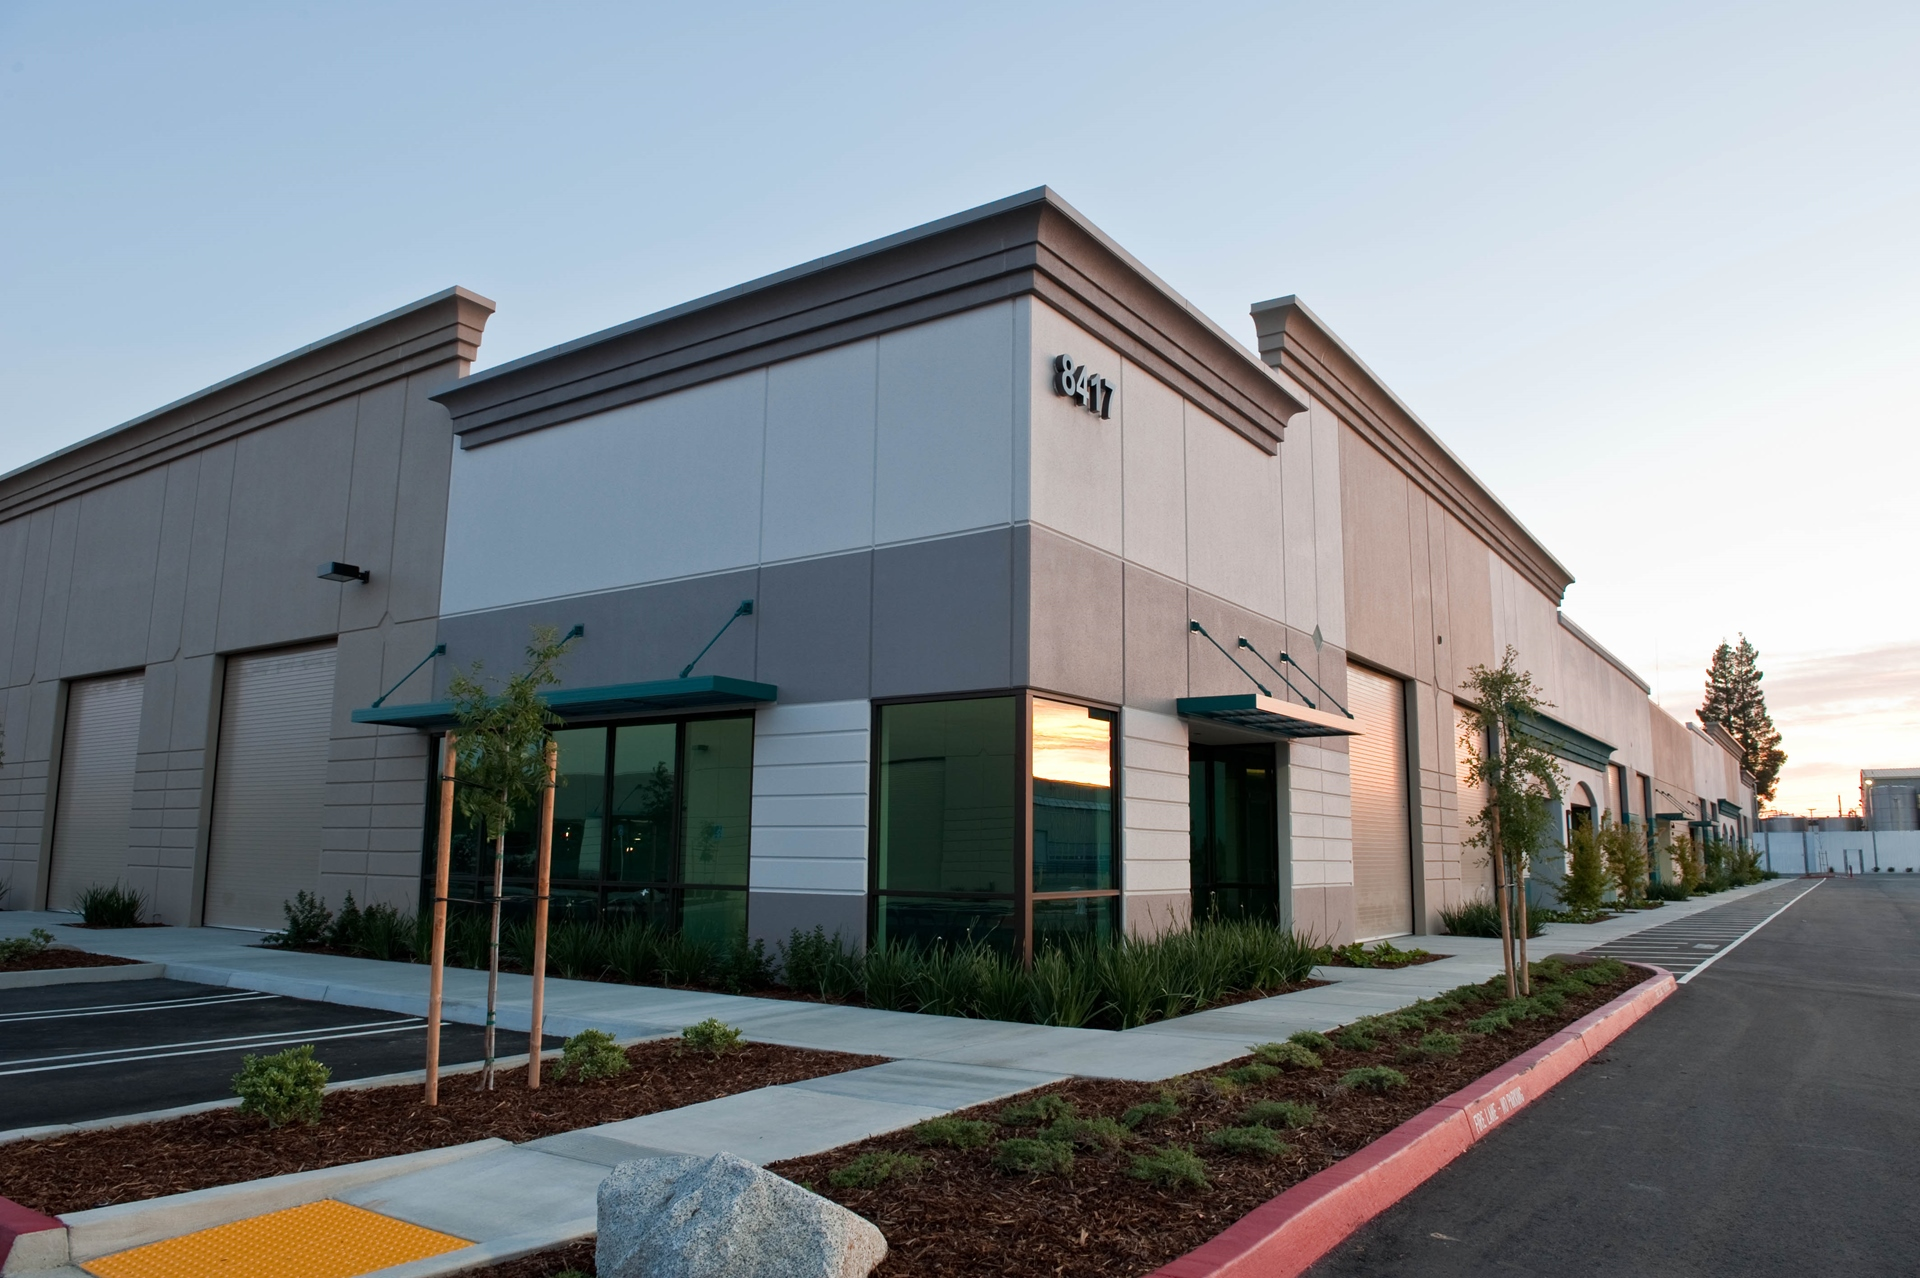 Commercial property management in Roseville, CA by Galilee Commercial Real Estate Property Management